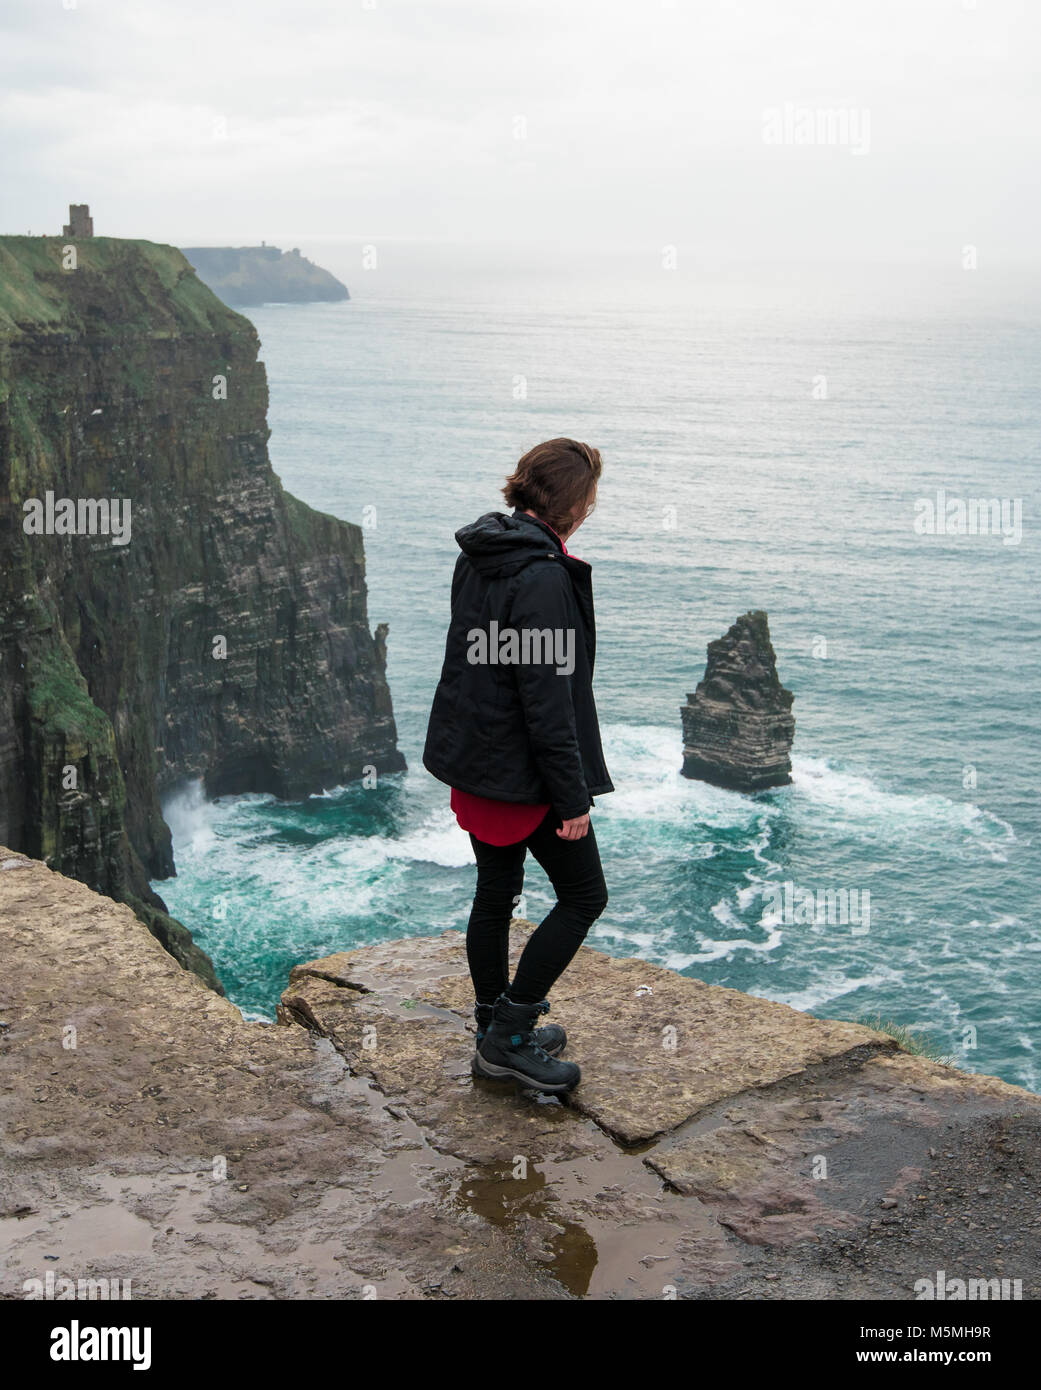 Standing on the edge of the mighty Cliffs of Moher - Stock Image